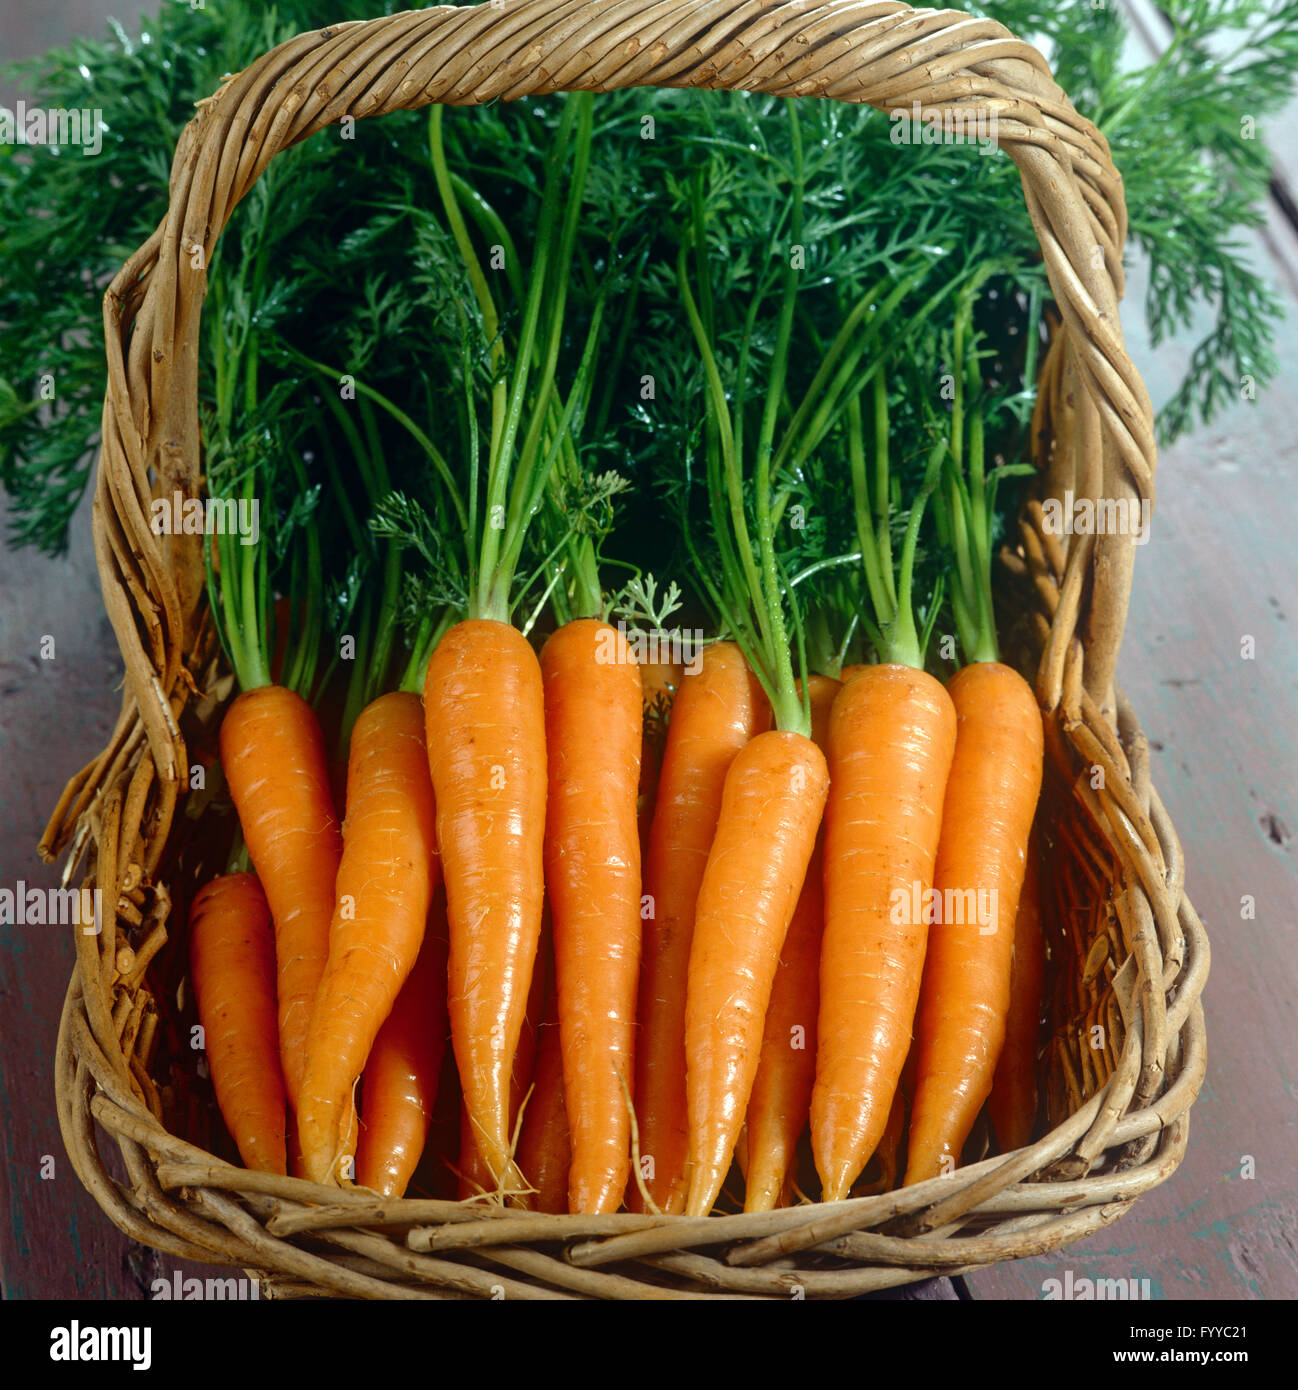 A bunch of carrots with tops in a basket, inside. - Stock Image